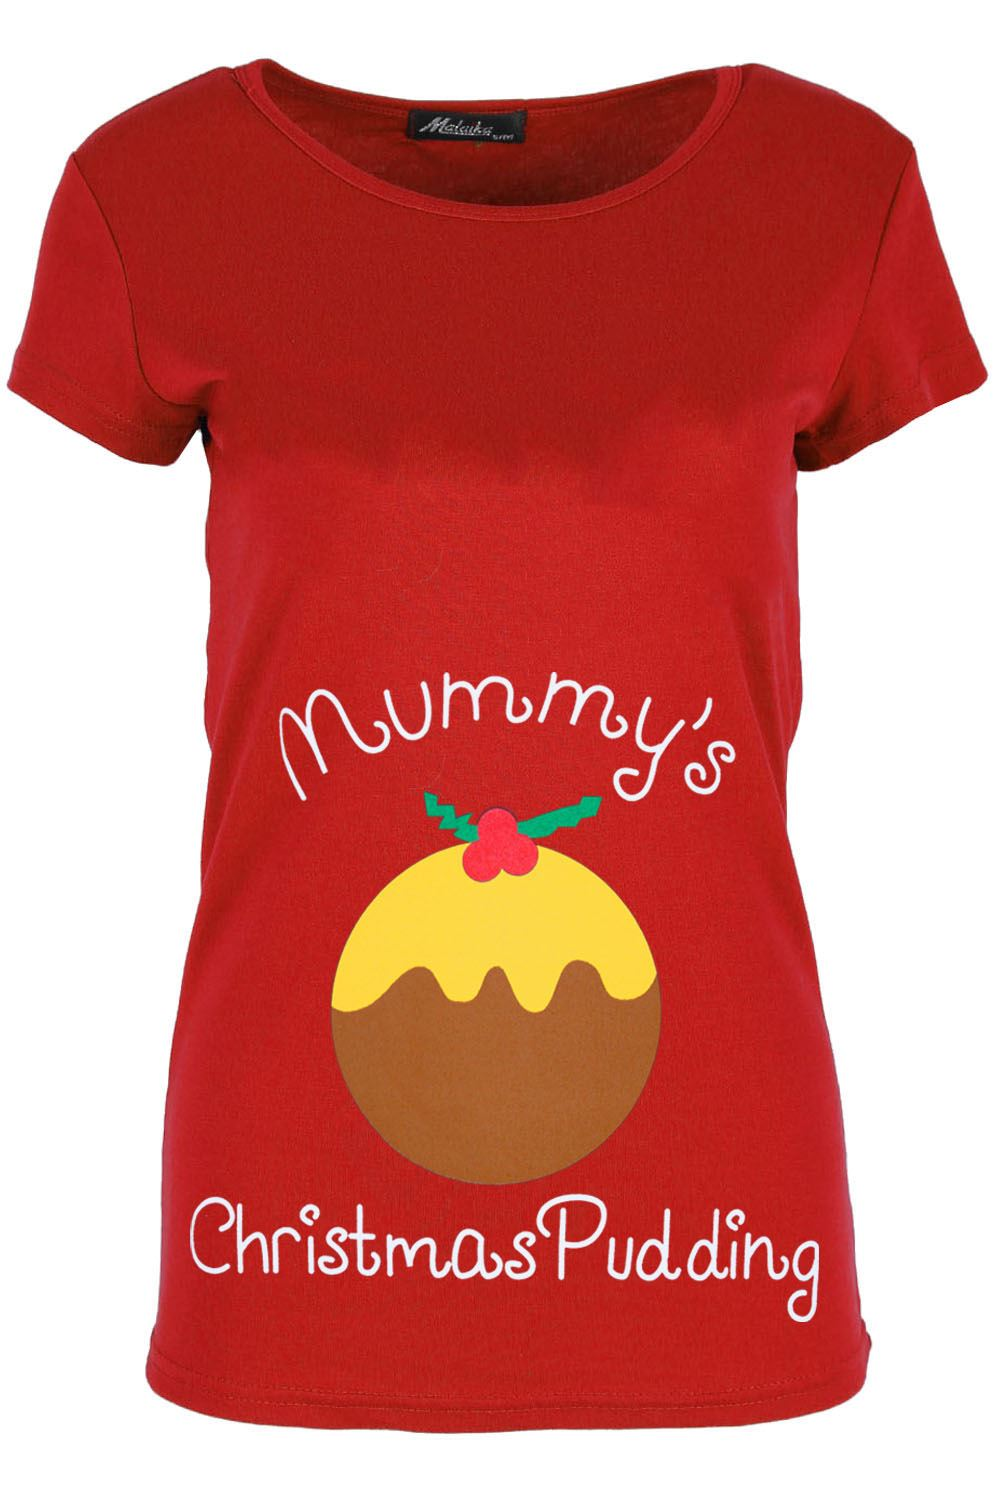 thumbnail 11 - Womens-Christmas-Xmas-Pullover-Elf-Candystick-Snowflakes-Ladies-T-Shirt-Tee-Top